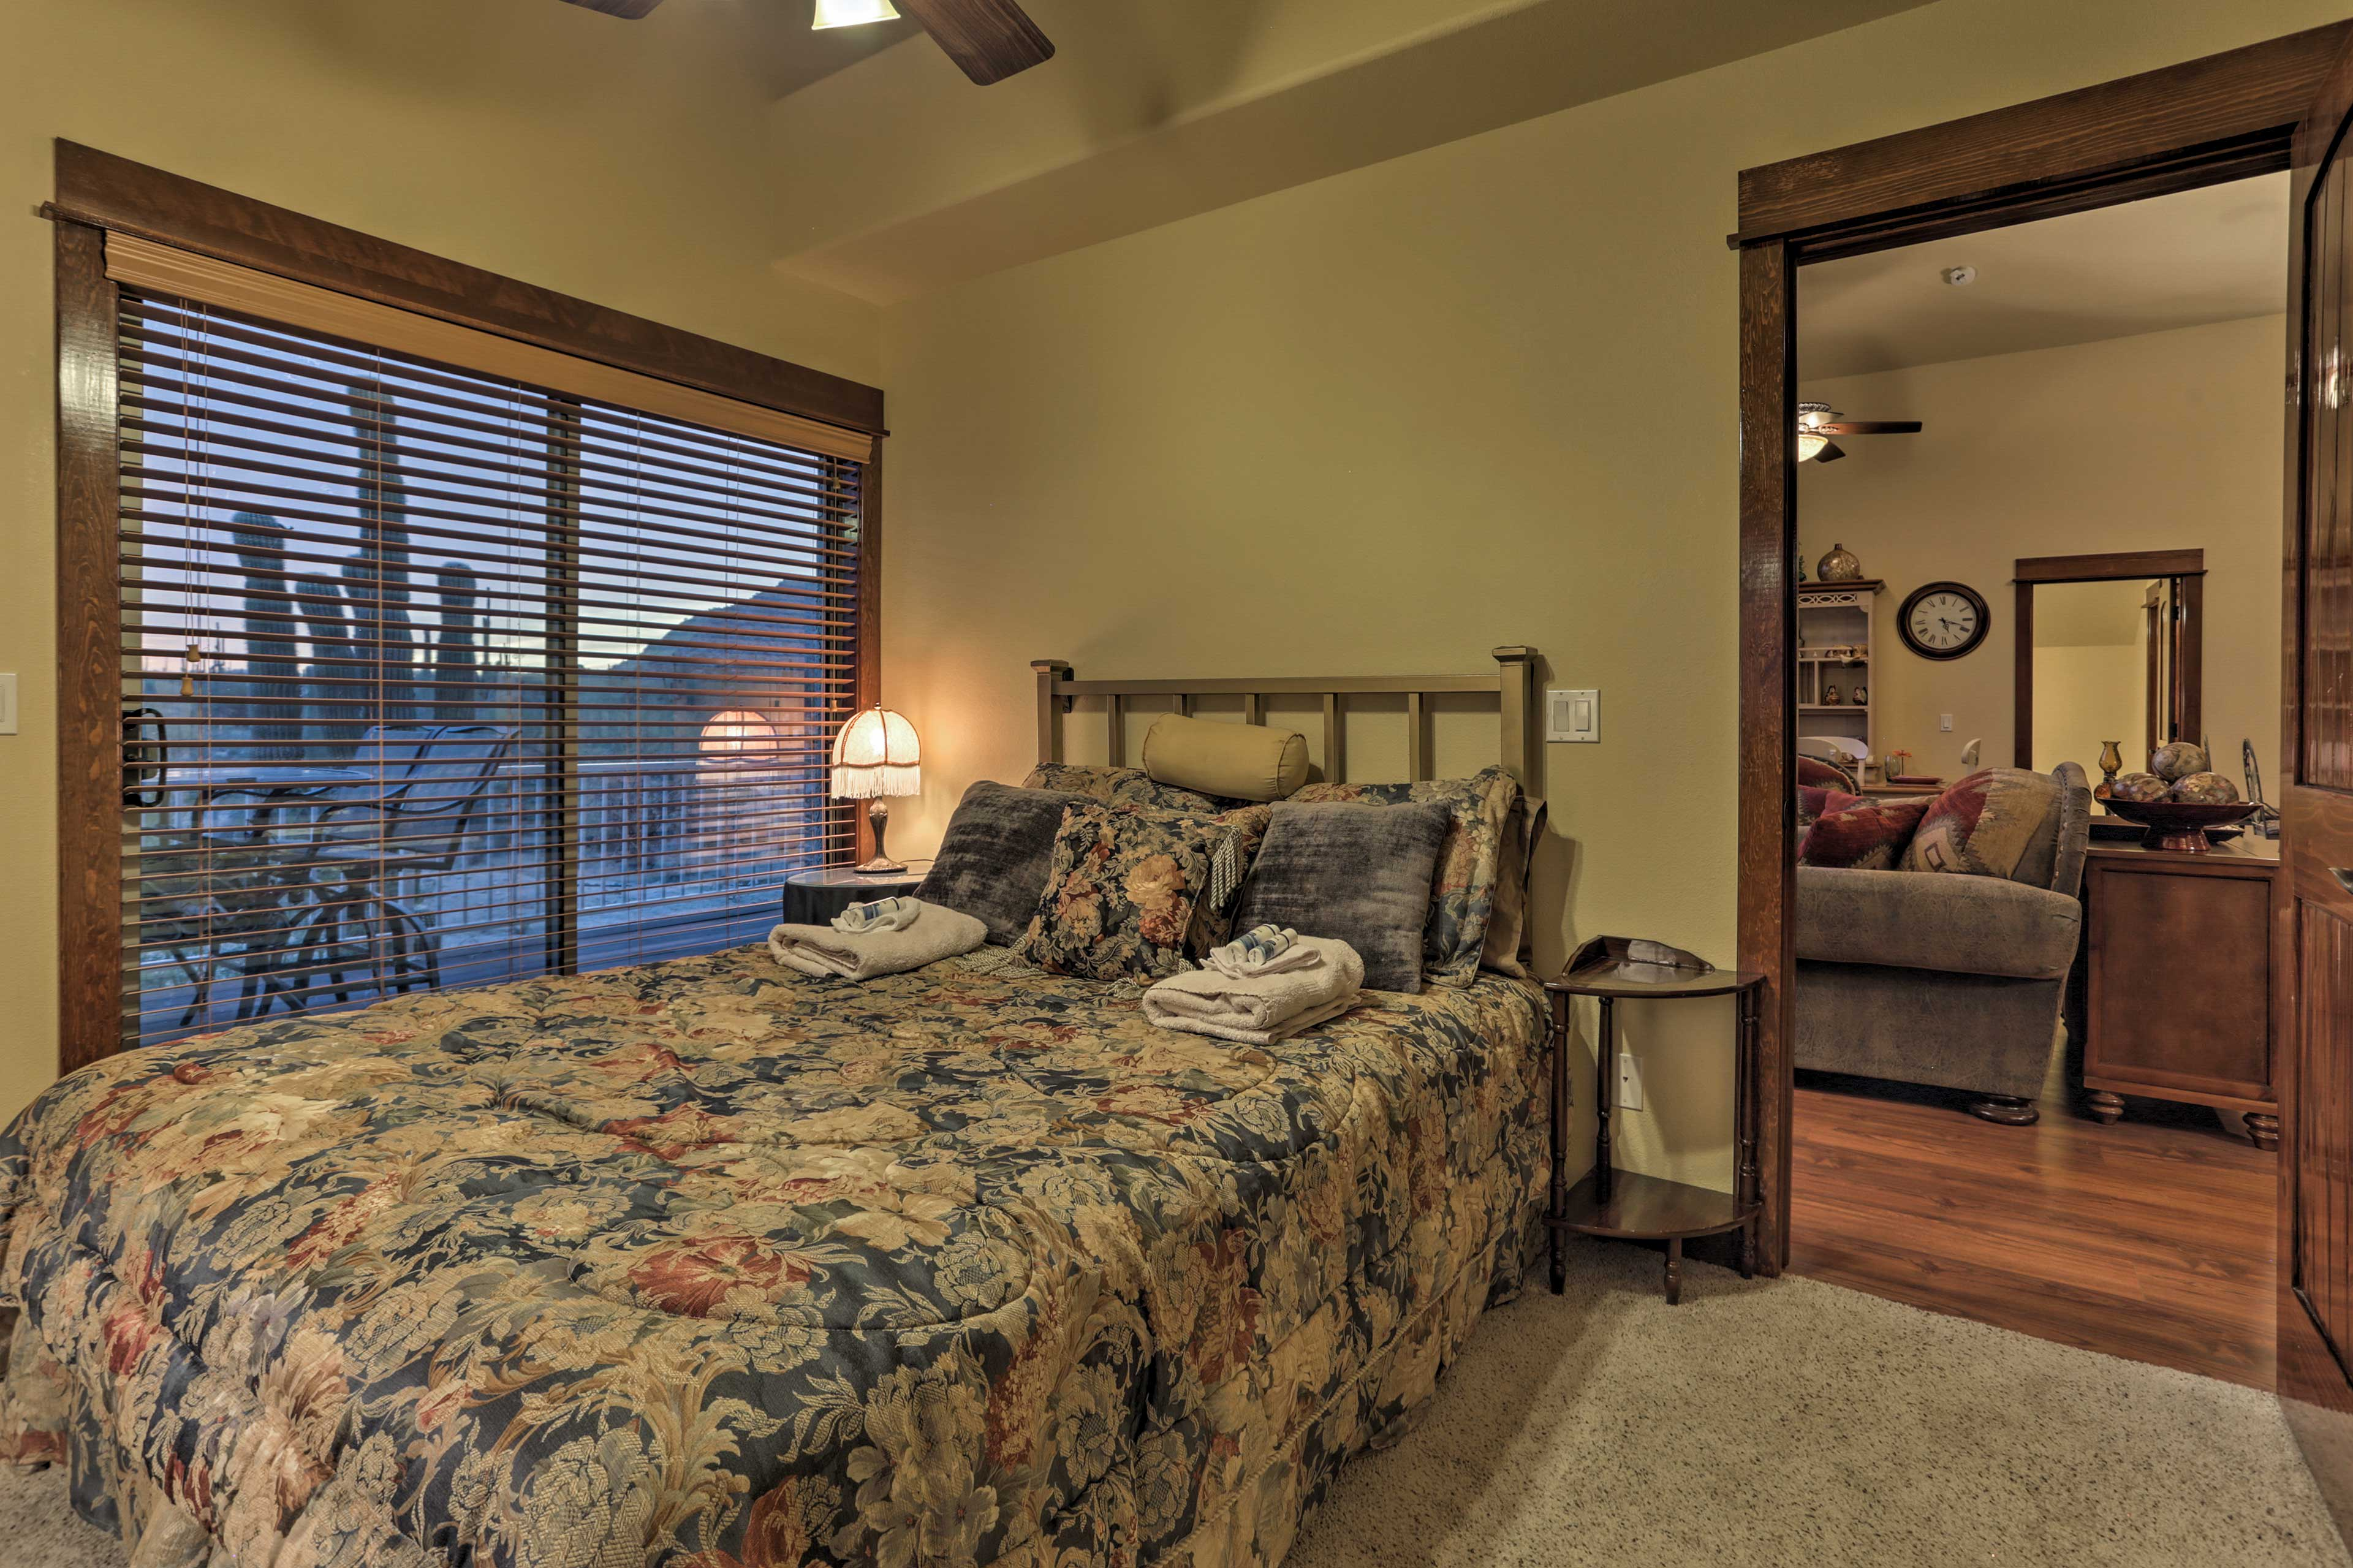 Additional guests will sleep soundly in this second queen bed.